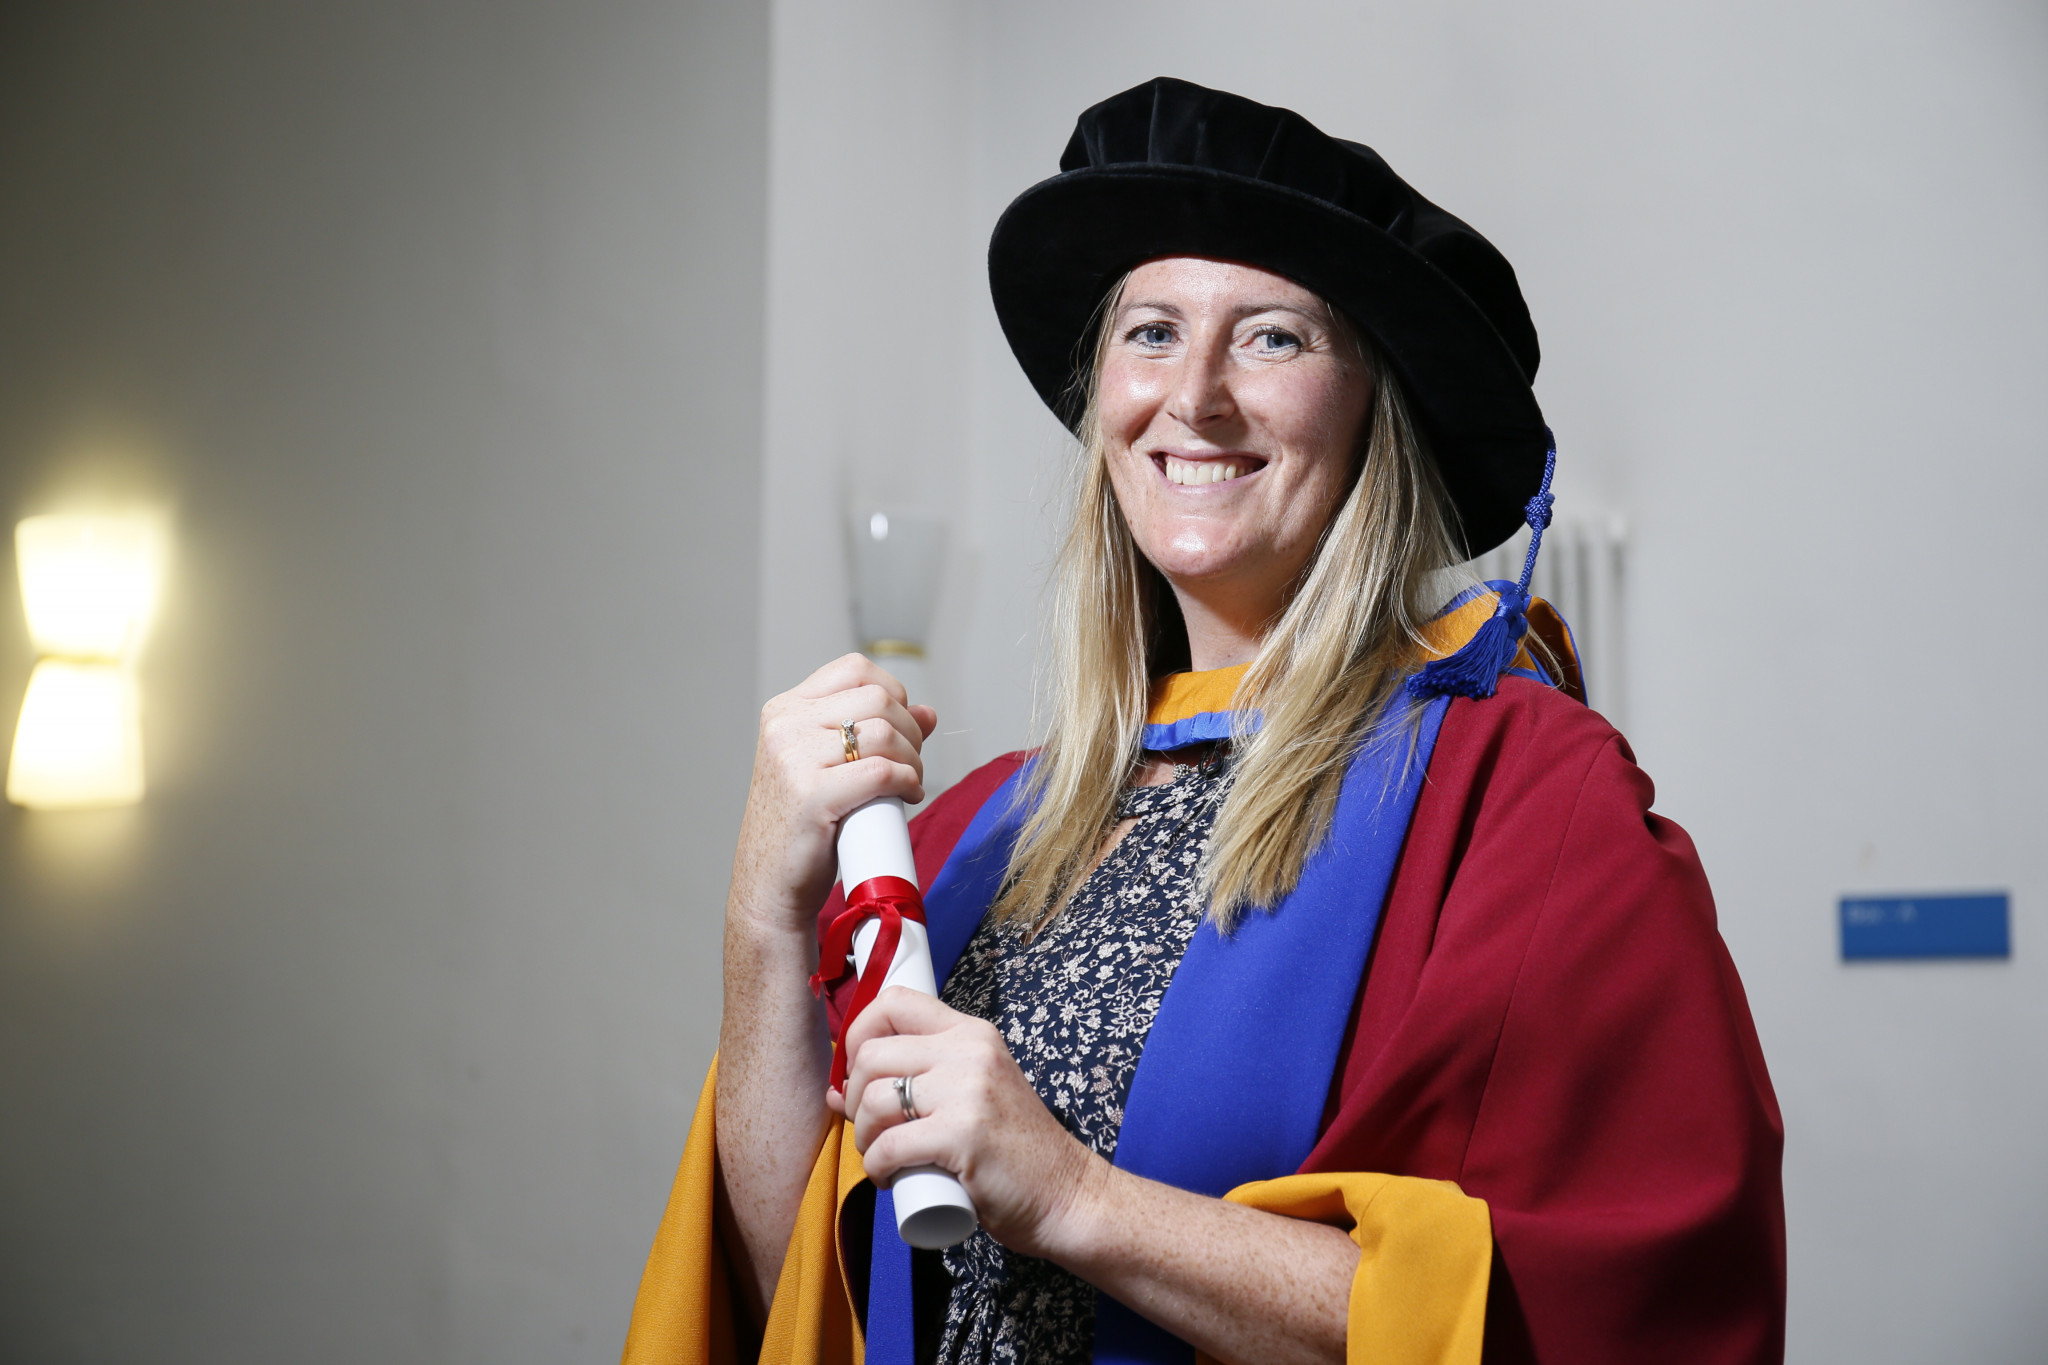 Victoria Aggar, who won two world rowing titles in 2006 and 2009, has been given an honorary degree by Leeds Becket University ©Leeds Beckett